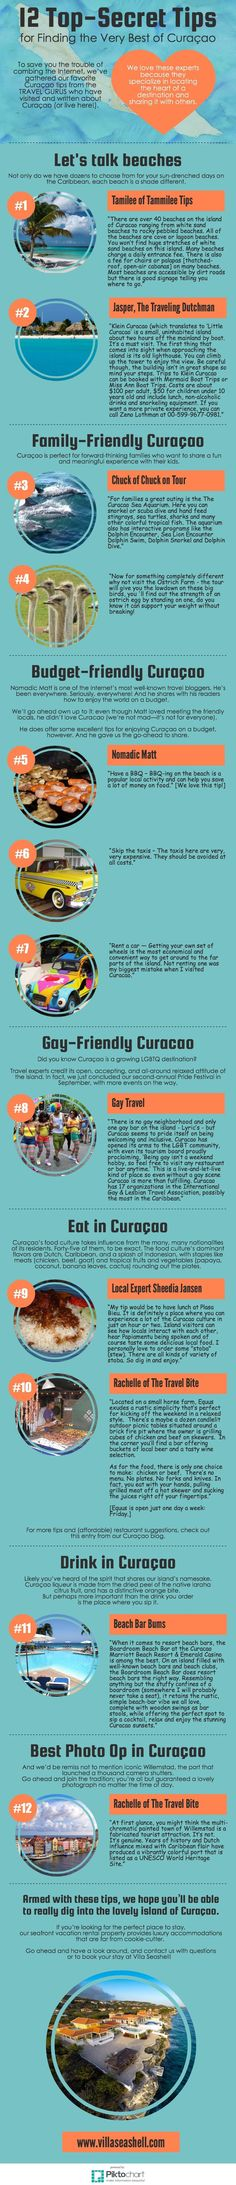 Curacao Infographic - 12 Top Secret Tips for Finding the Very Best of Curacao